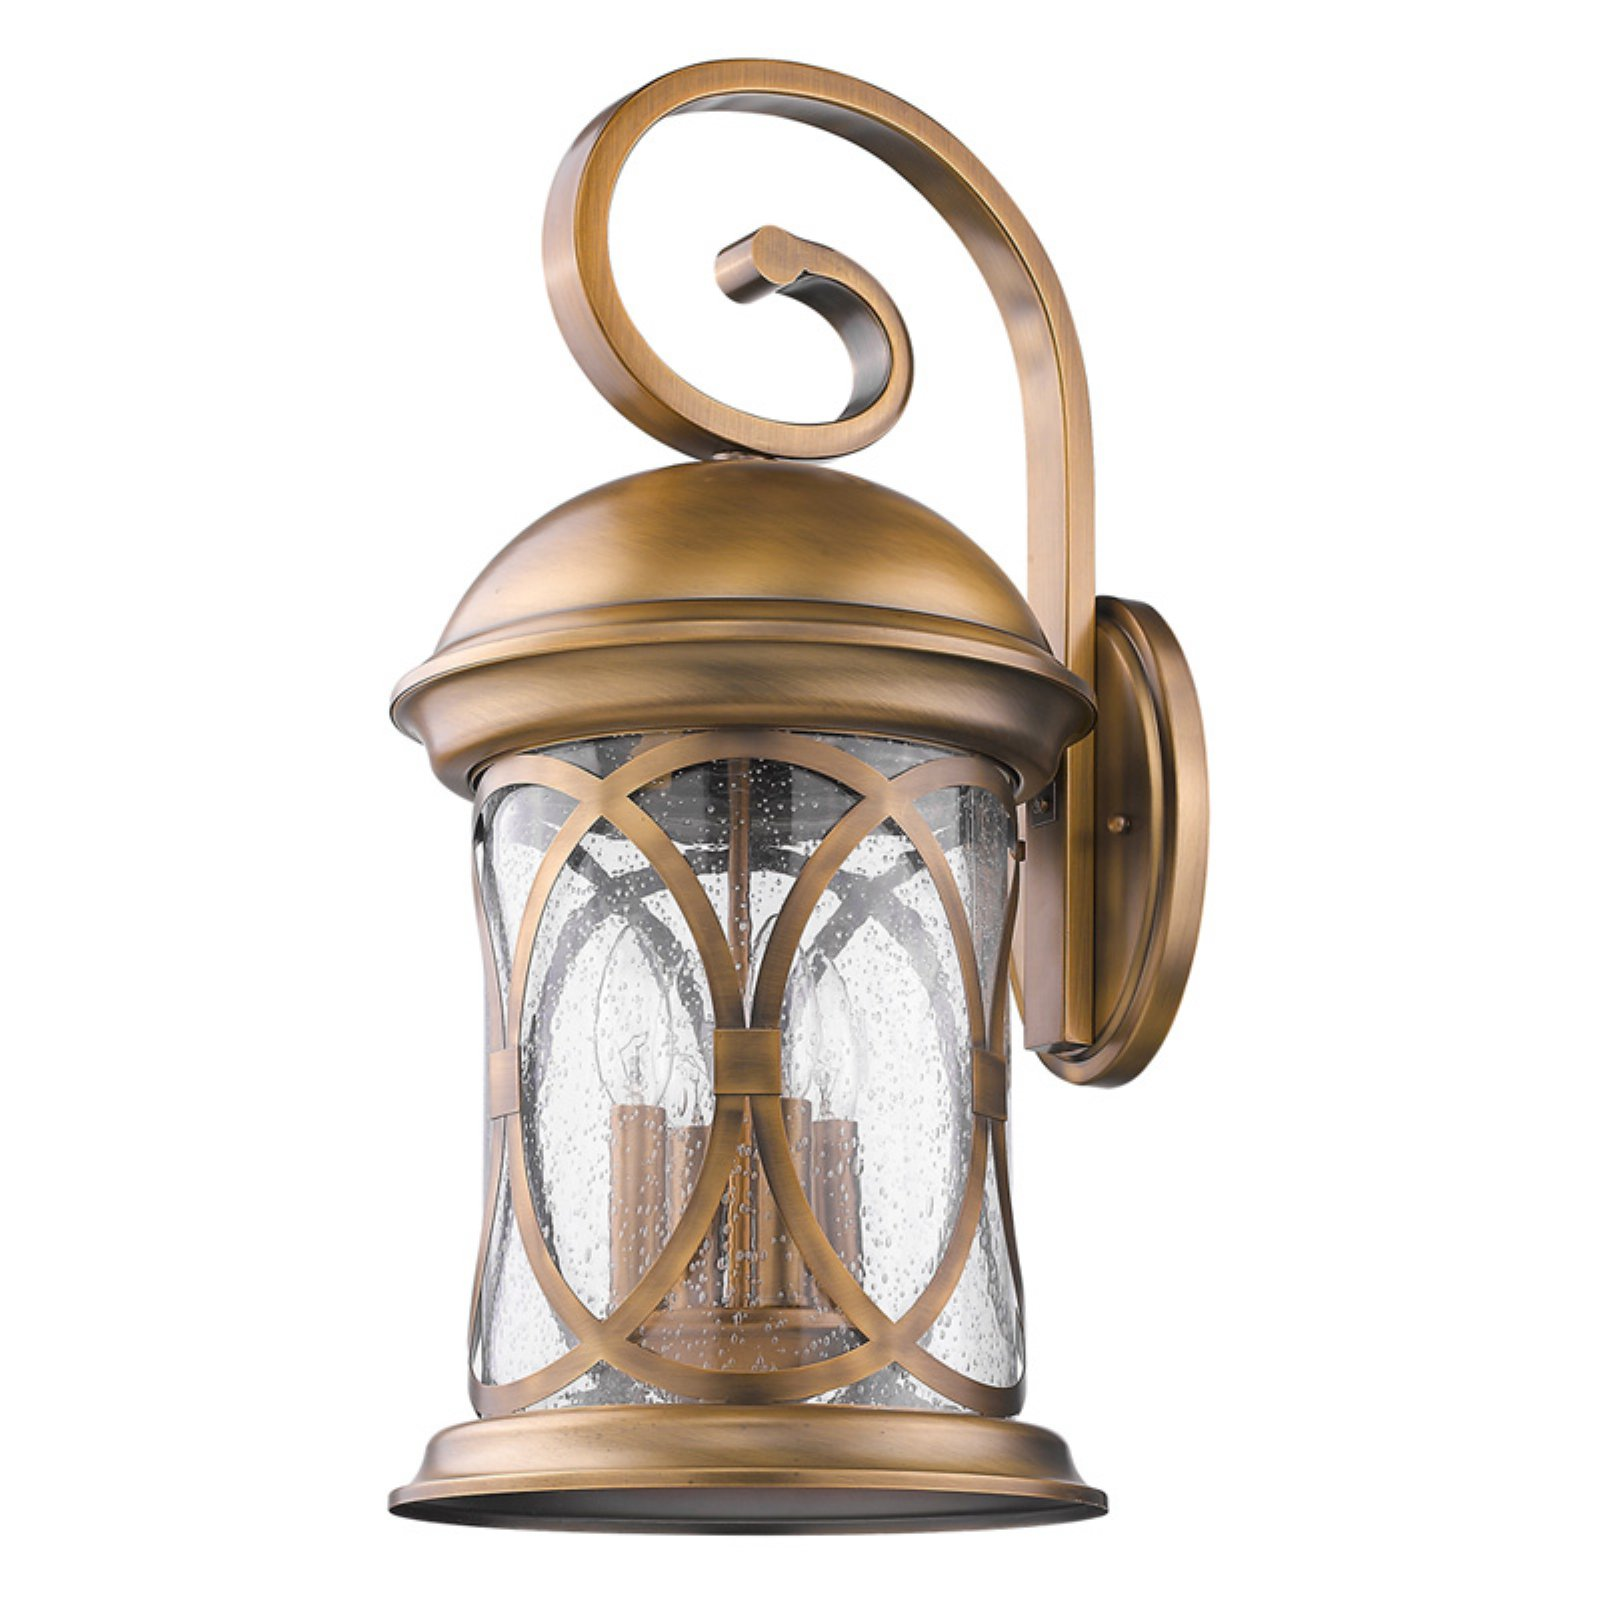 Acclaim Lighting Inc Lincoln 1532ATB Outdoor Wall Light